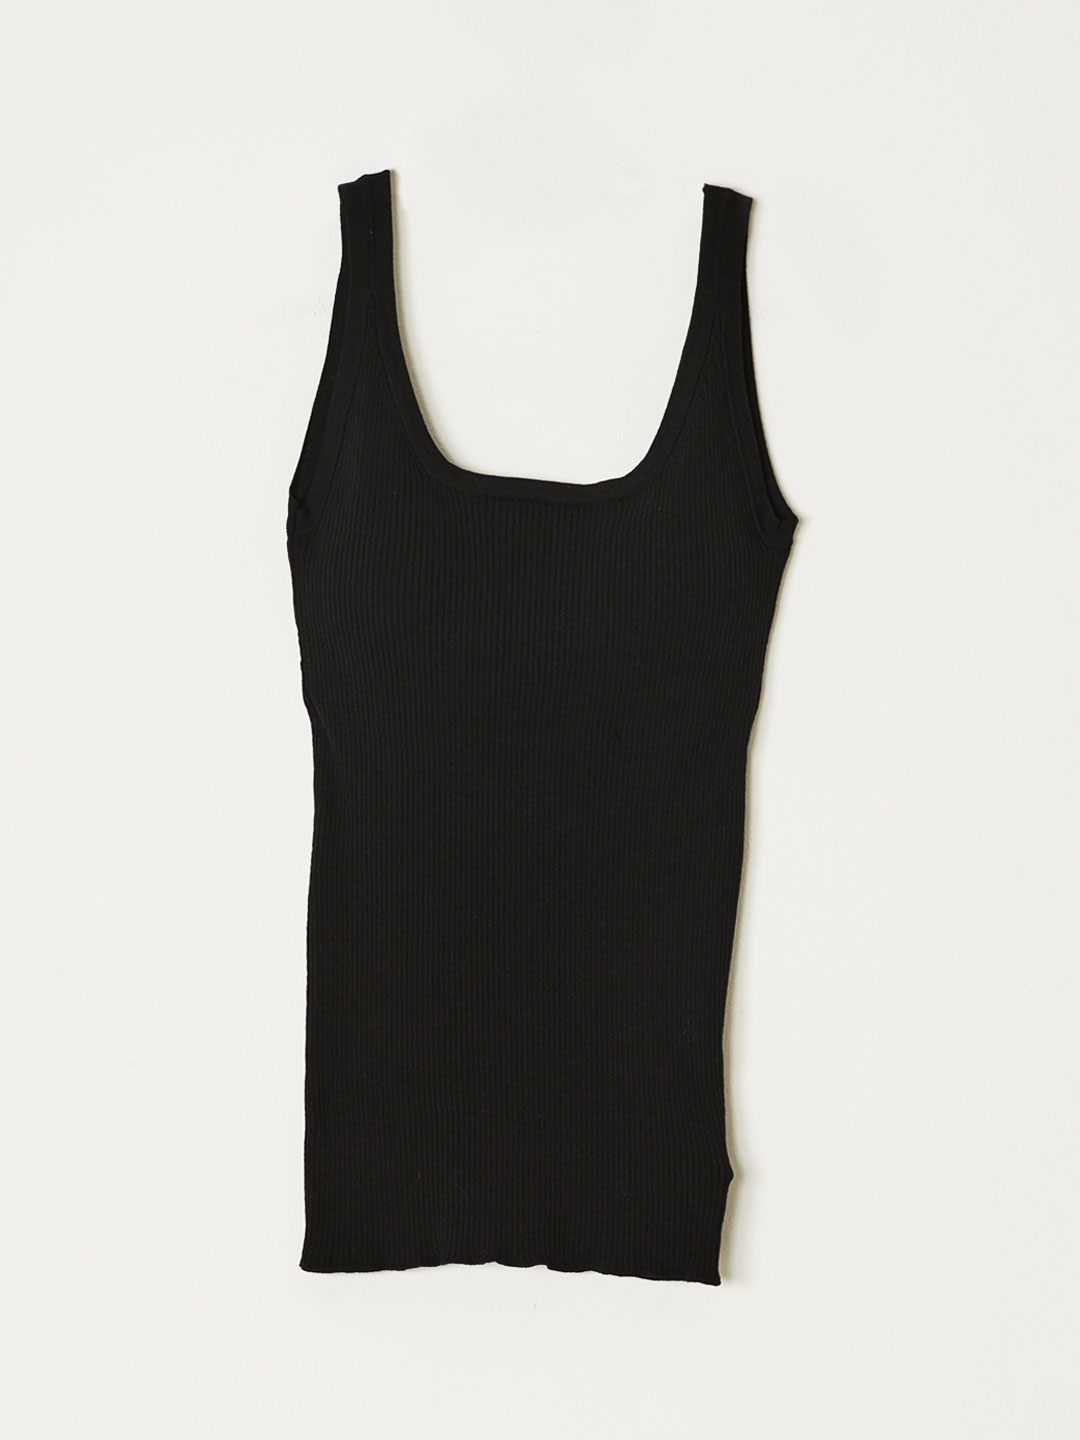 RIB KNIT TANK TOP  - Black